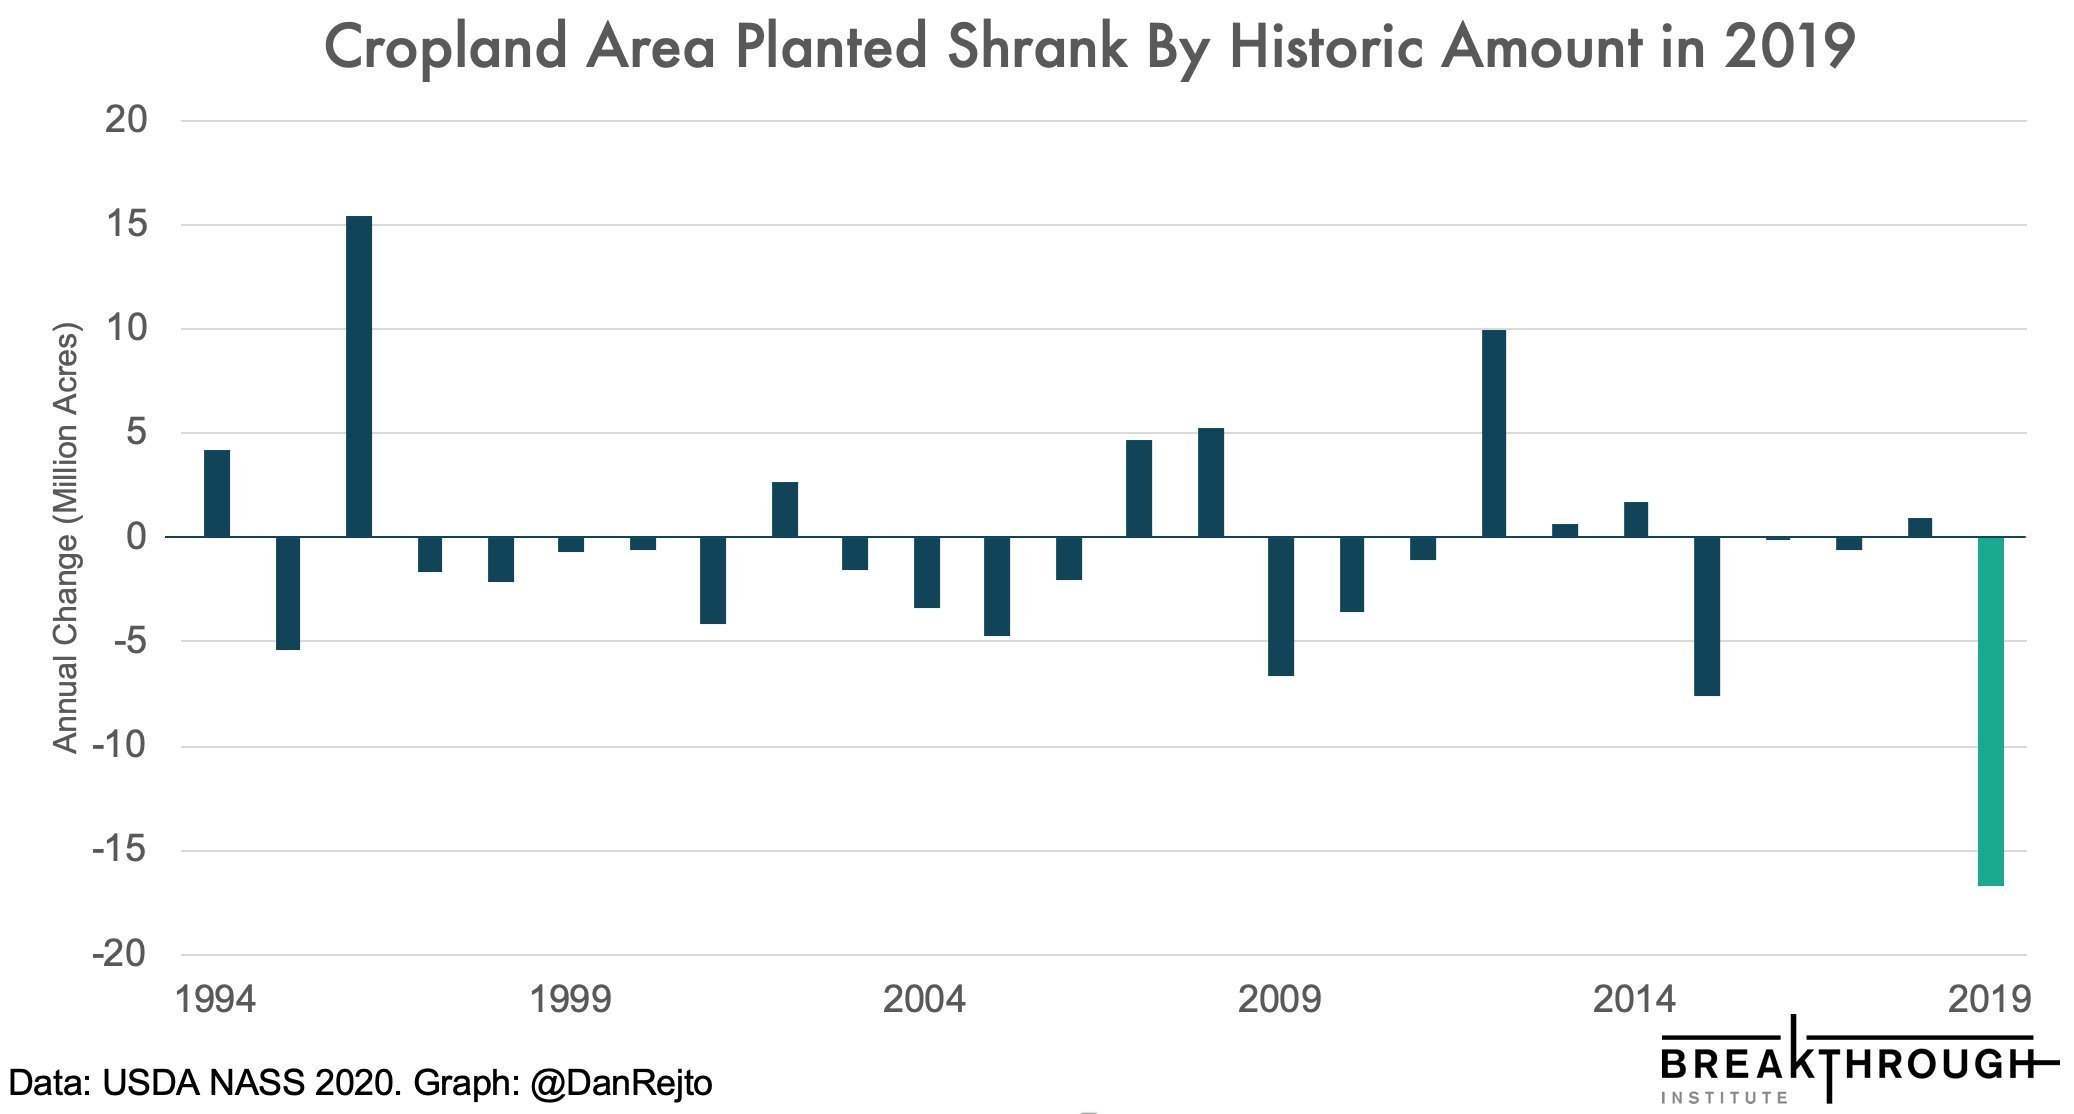 Cropland Area Shrank by Historic Amount in 2019